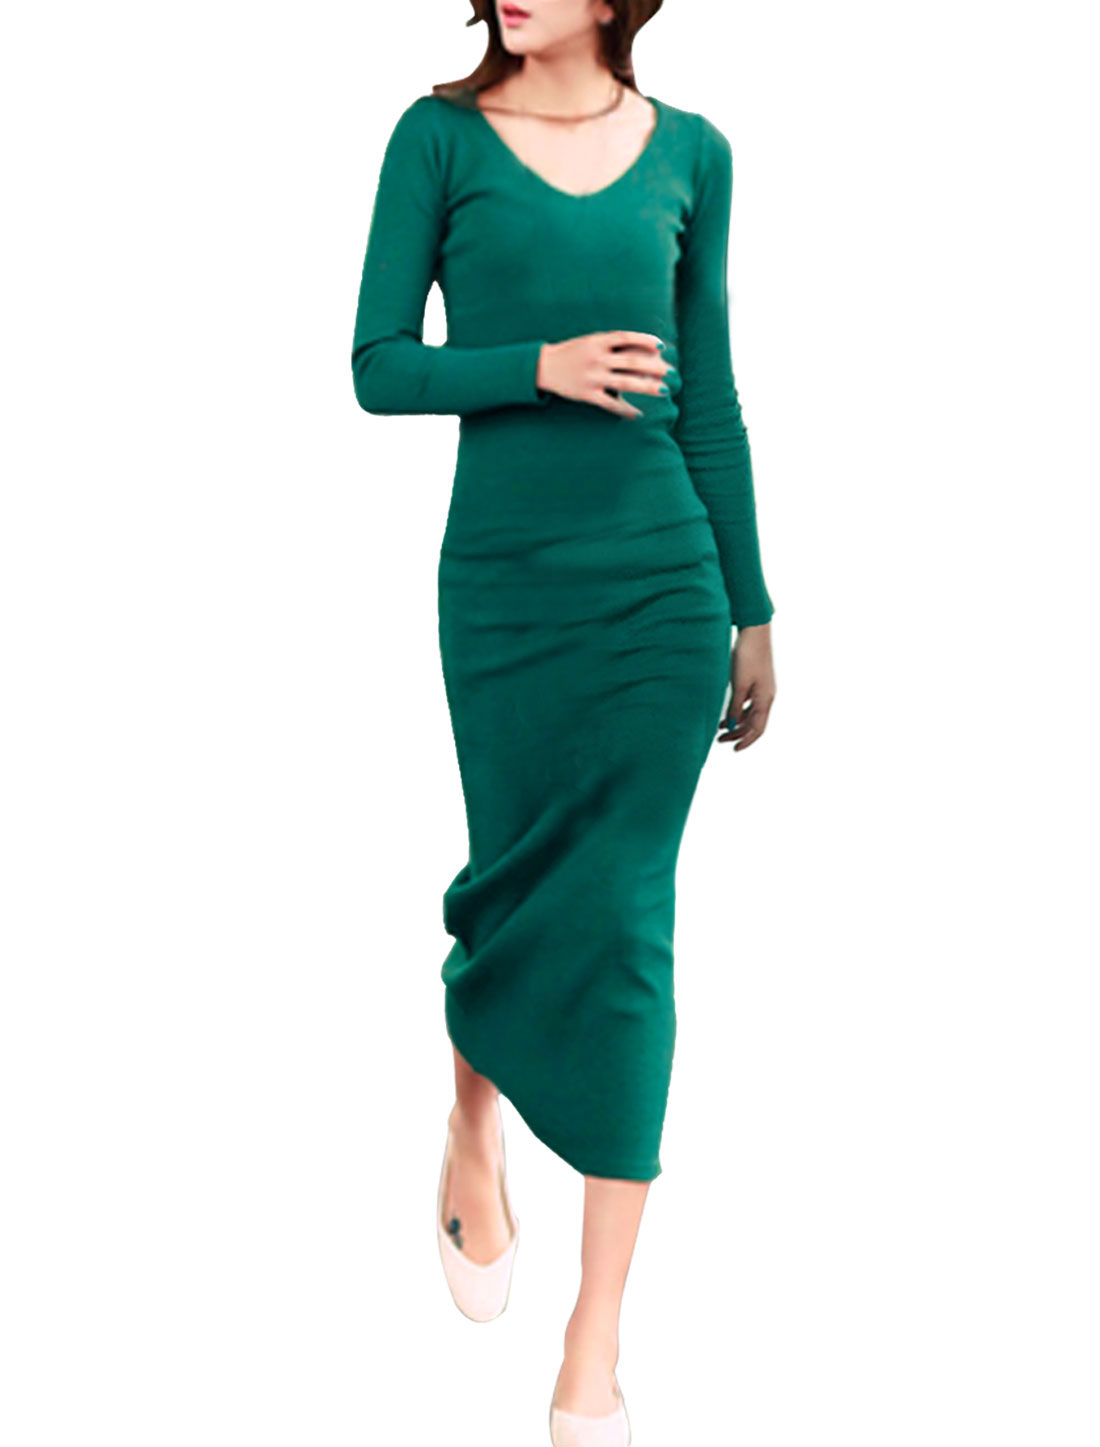 Women Scoop Neck Long Sleeves Slim Fit Midi Dress Dark Green S